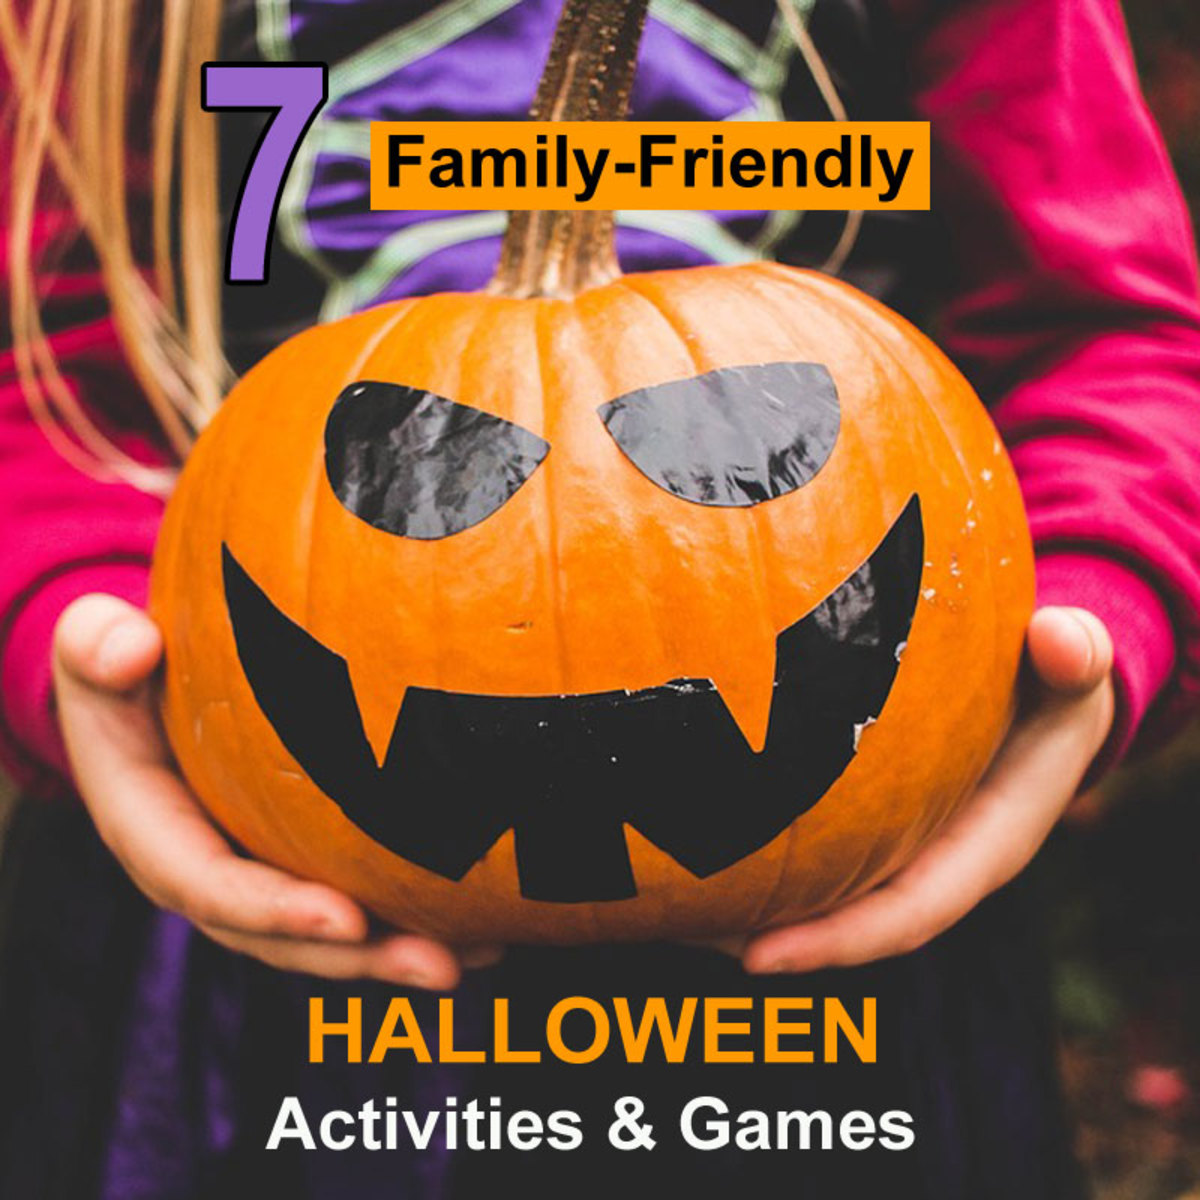 7 Fun and Family-Friendly Halloween Activities and Games